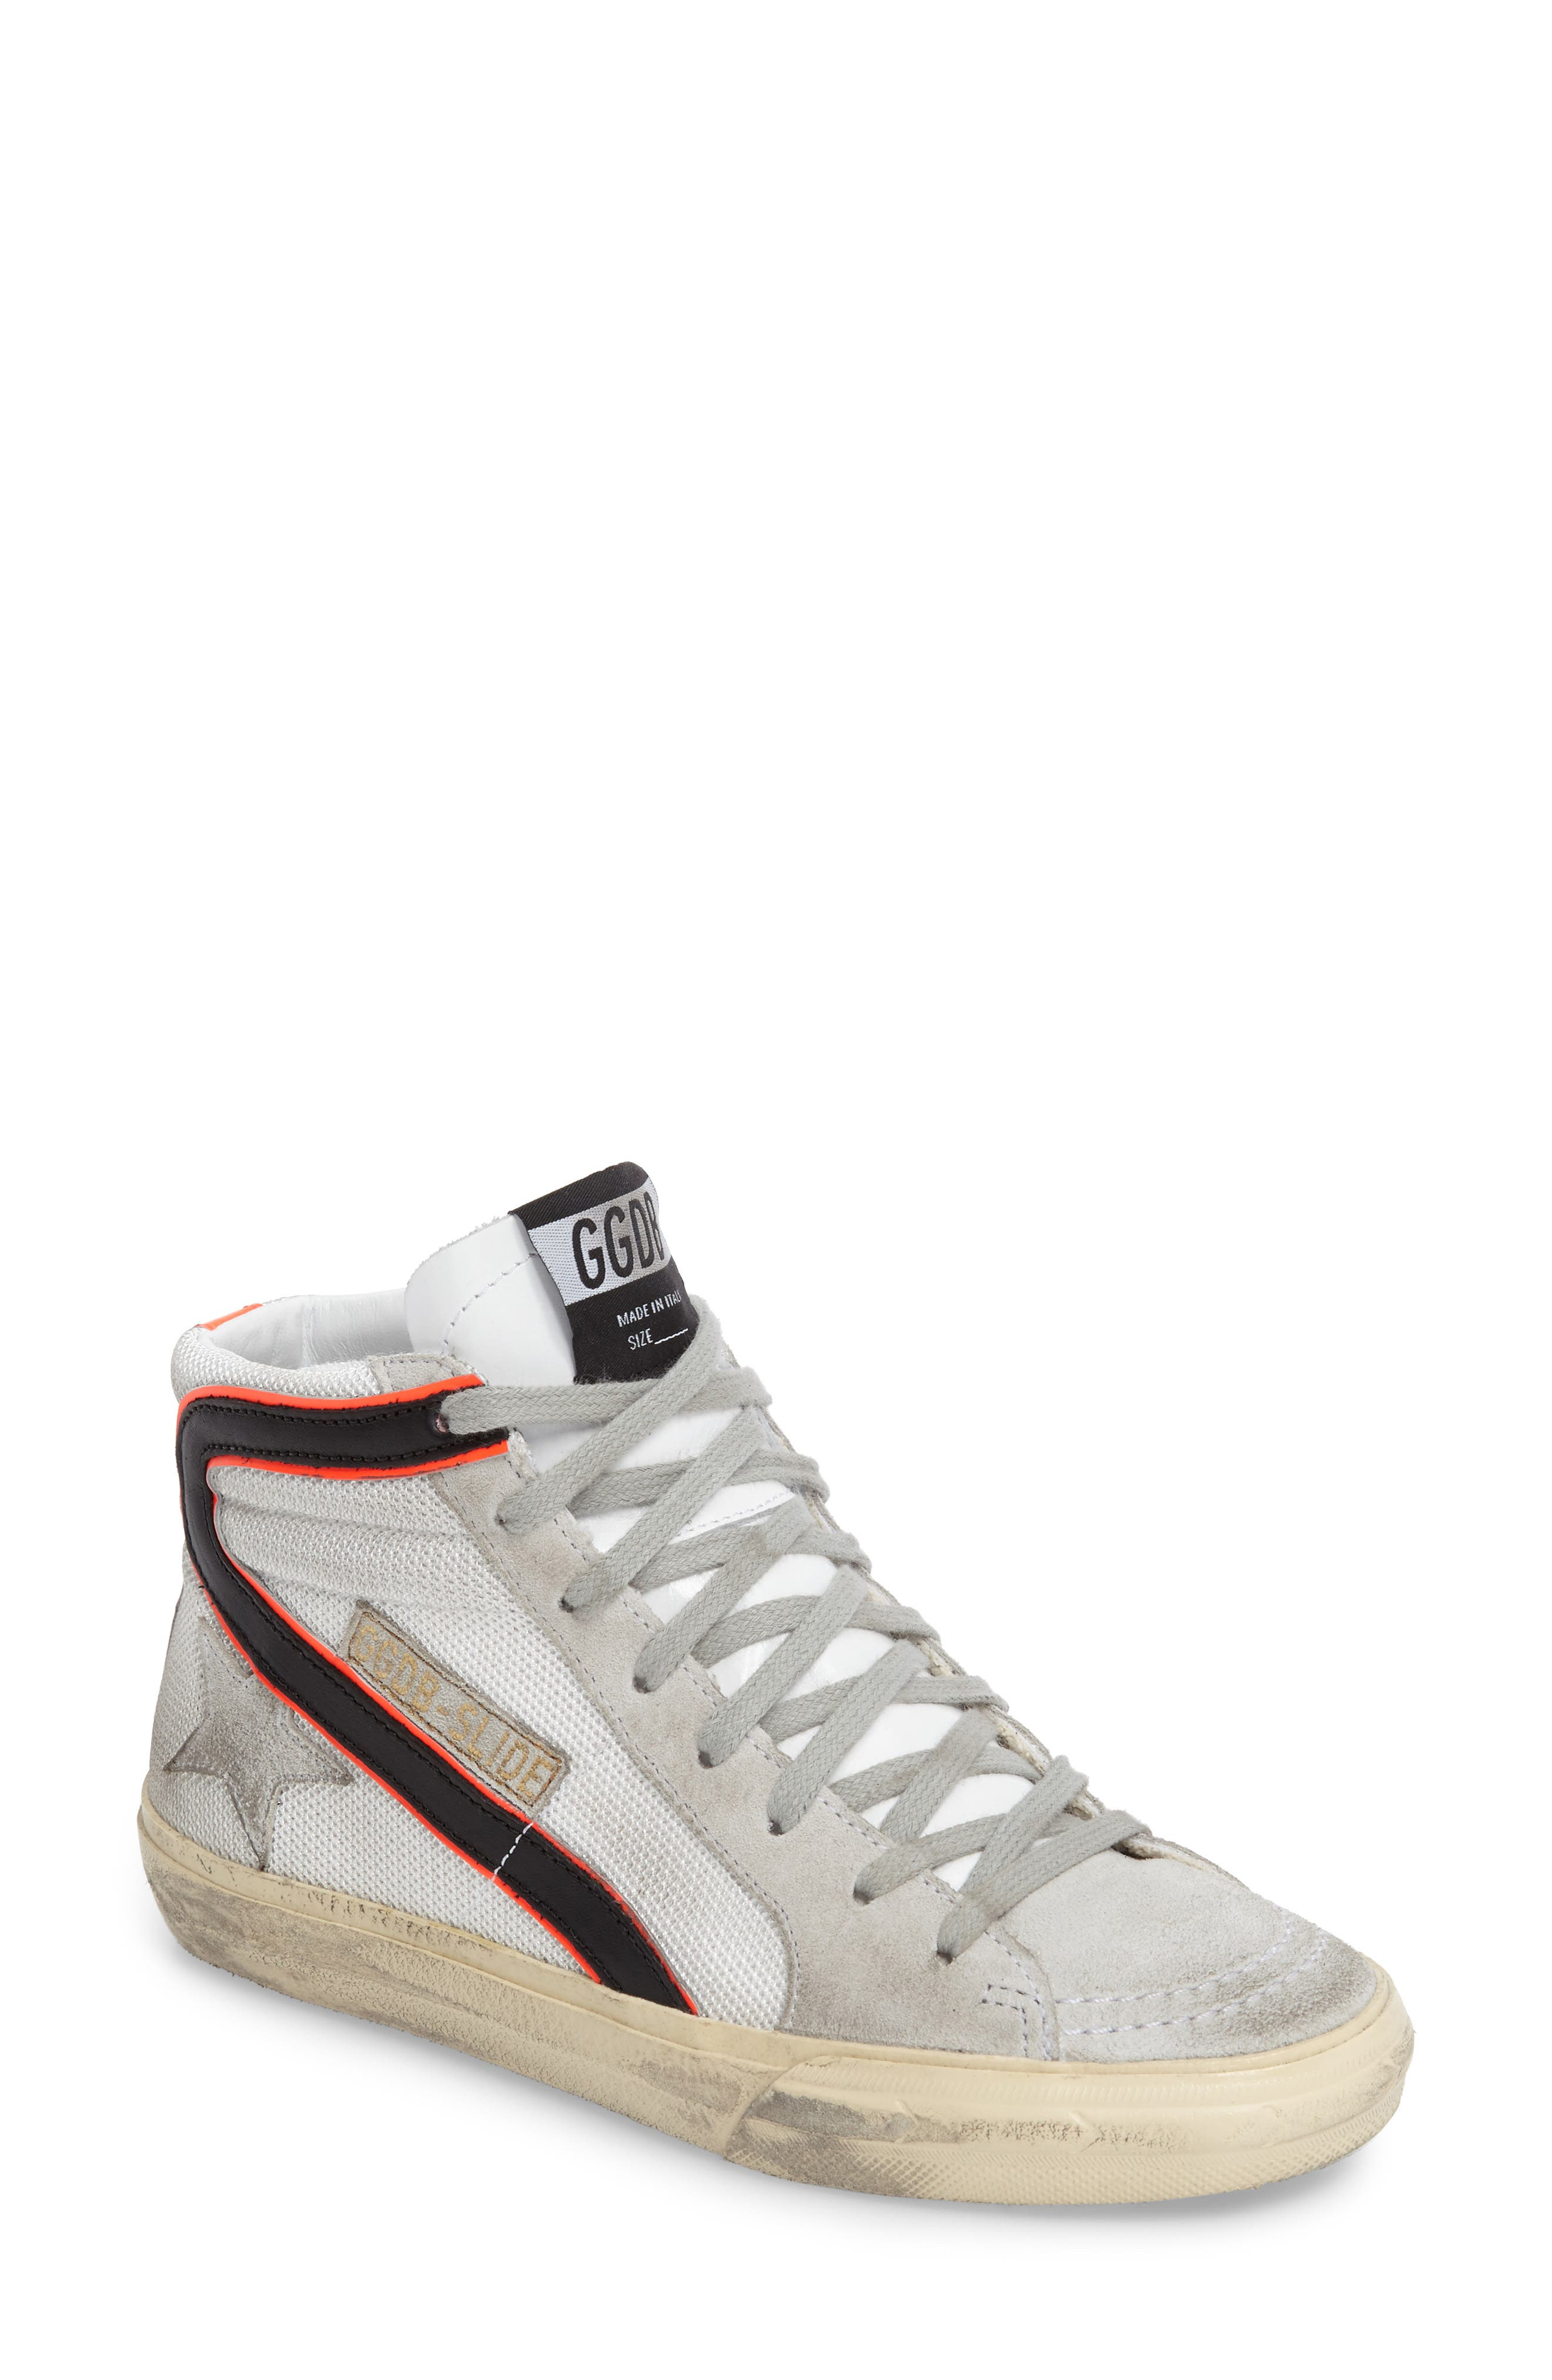 Main Image - Golden Goose Slide High Top Sneaker (Women)